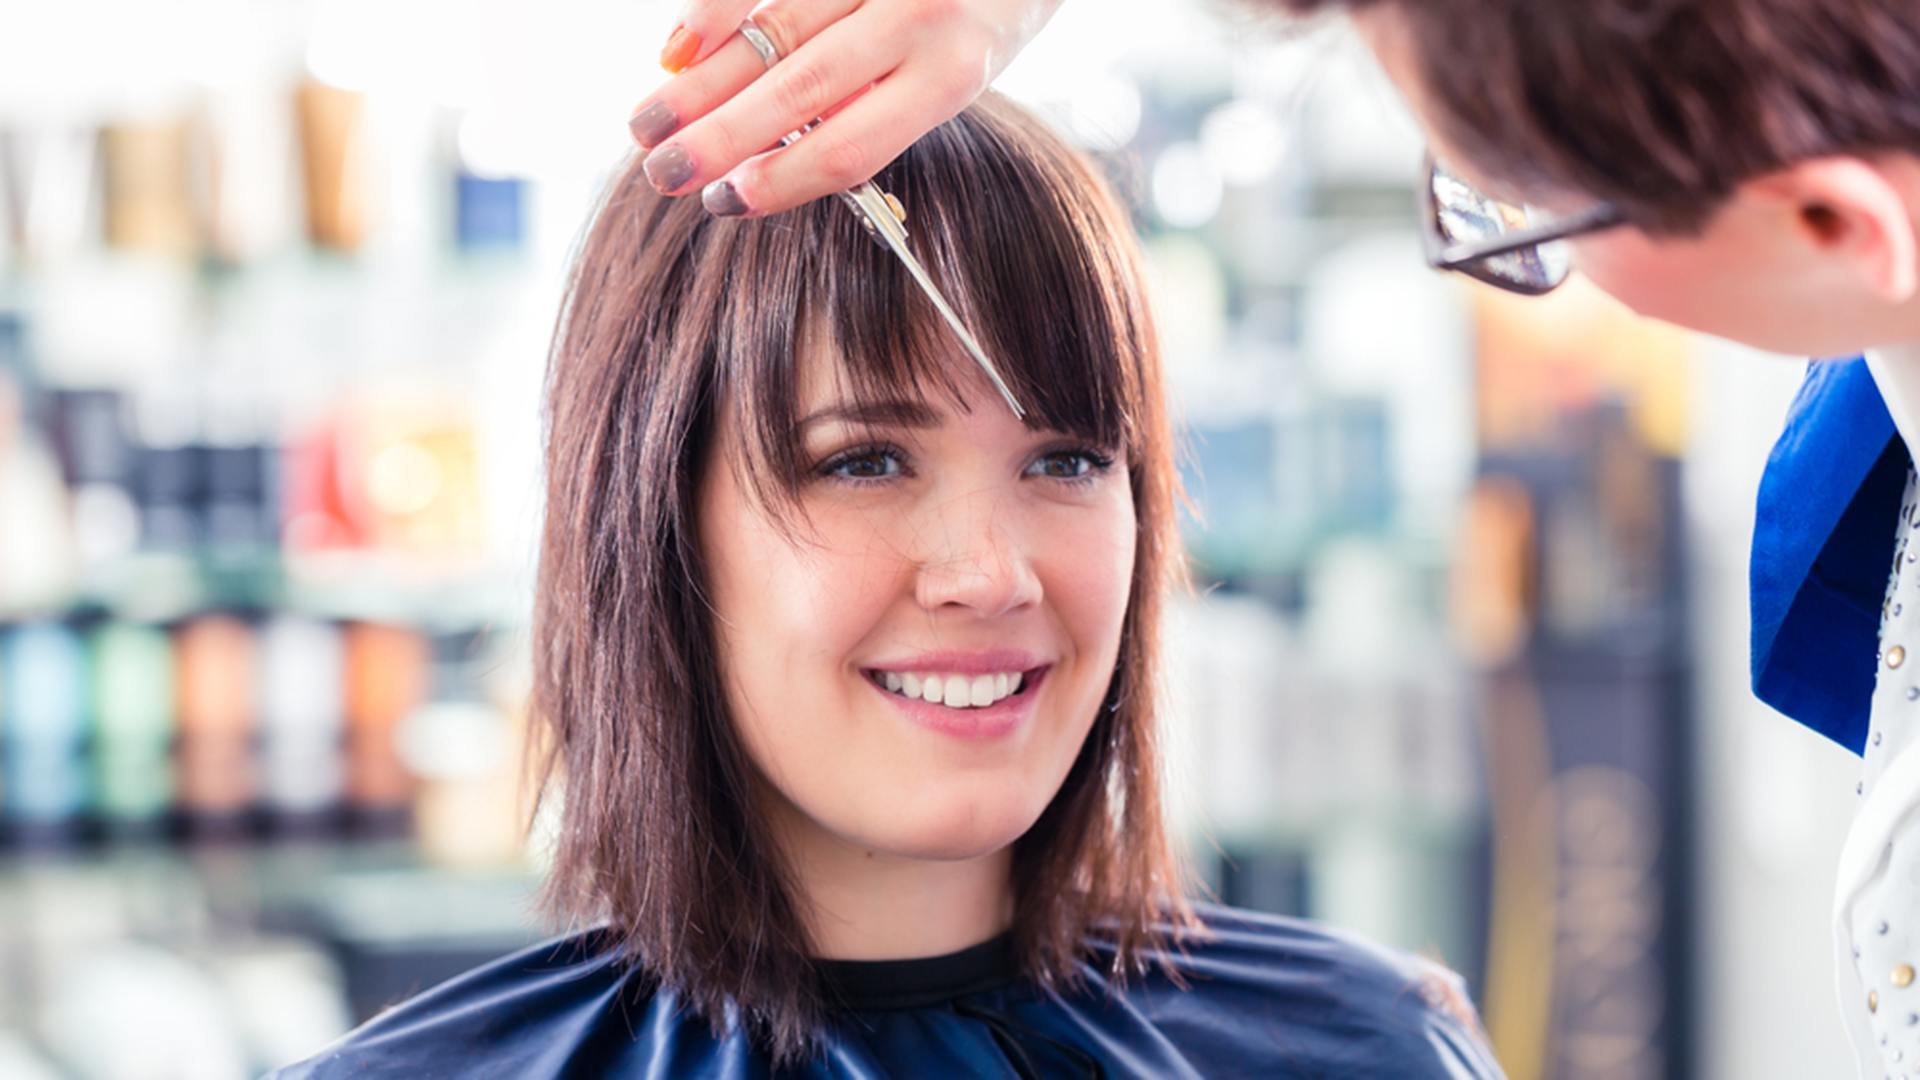 Hair salon etiquette: What if I hate my haircut? - TODAY.com